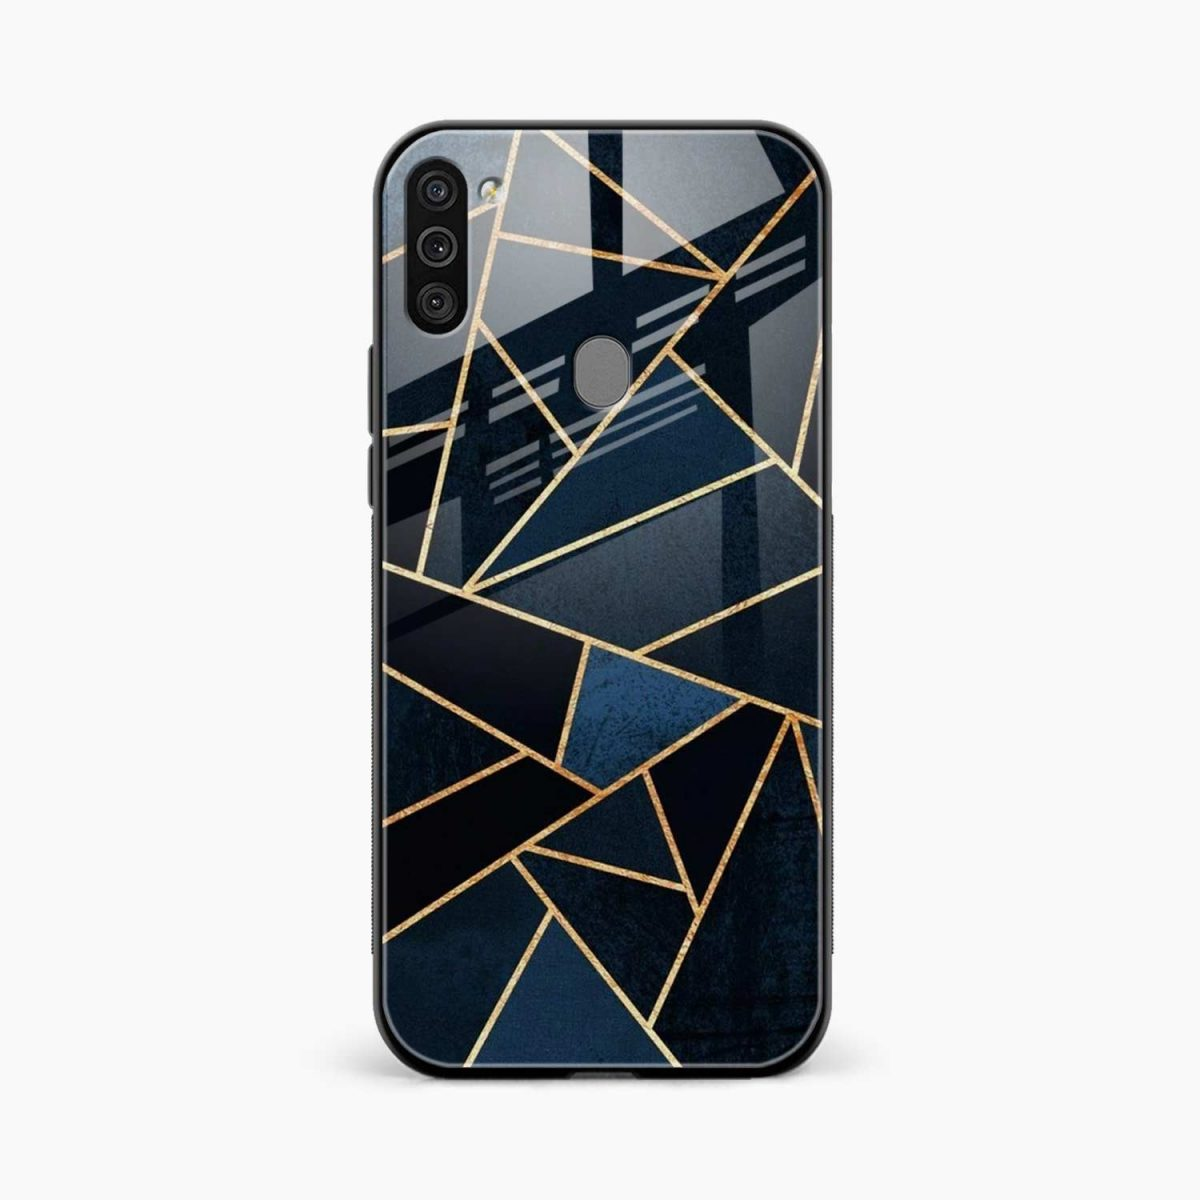 zig zag pattern front view samsung galaxy m11 back cover